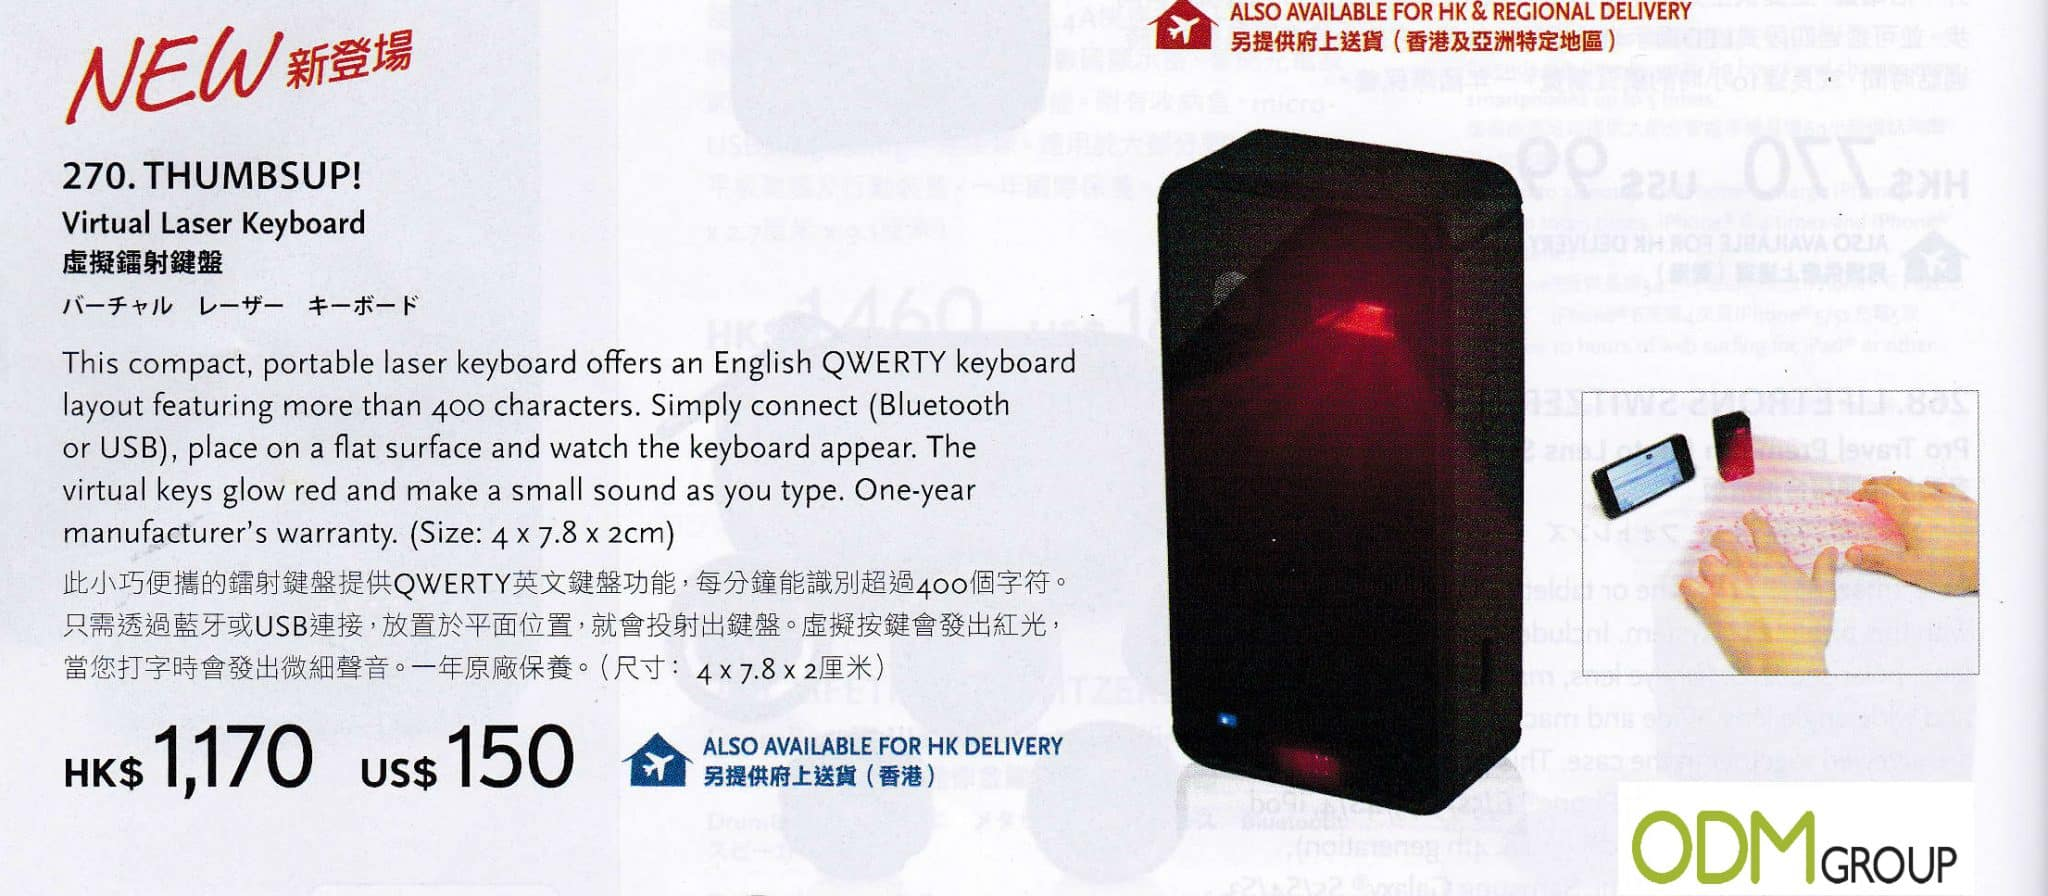 Cathay Pacific: Virtual Laser Keyboard as a High End Gift